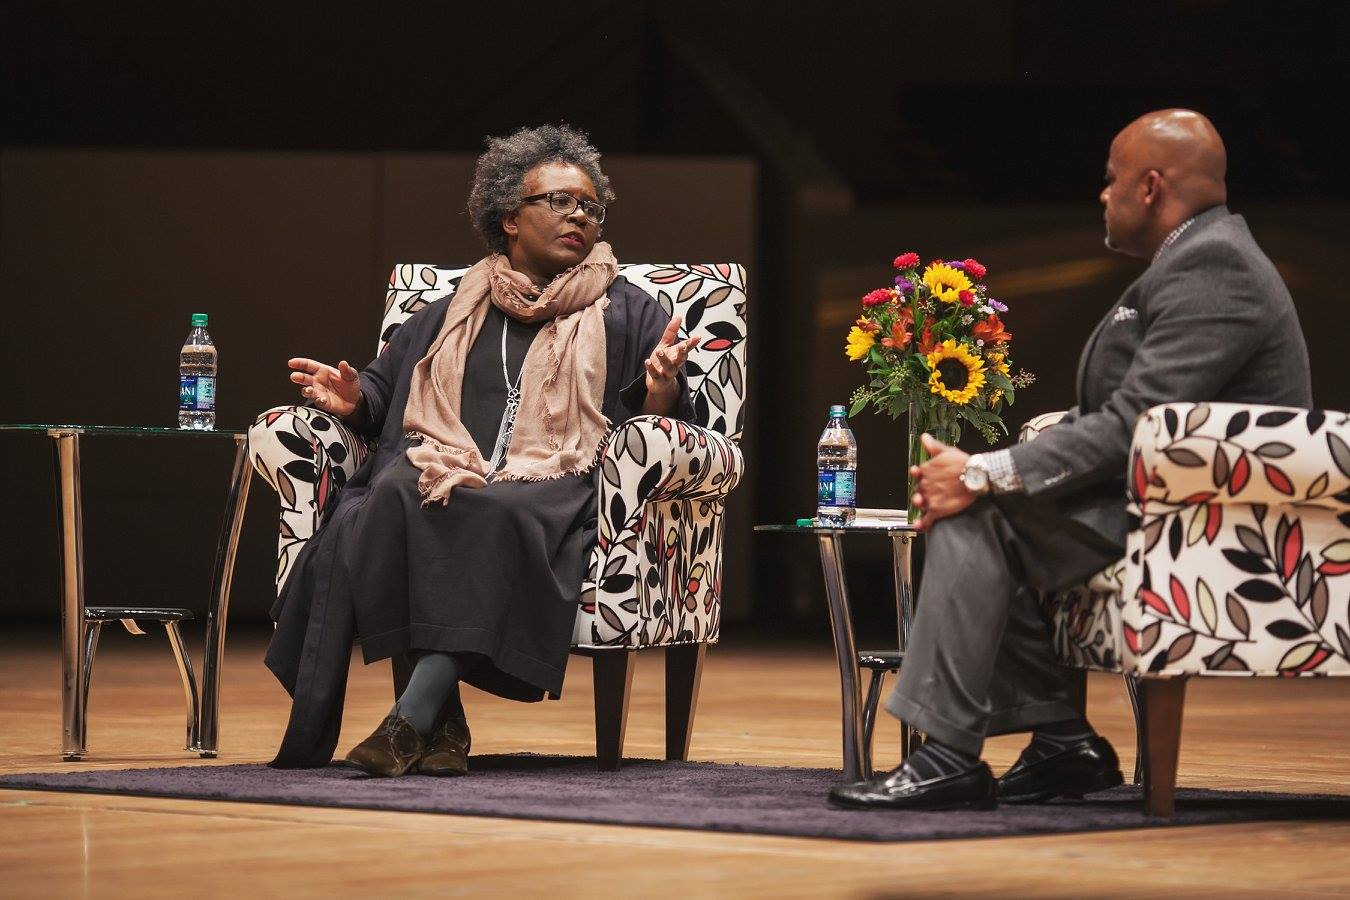 Claudia Rankine in conversation with Mayor Michael B. Hancock